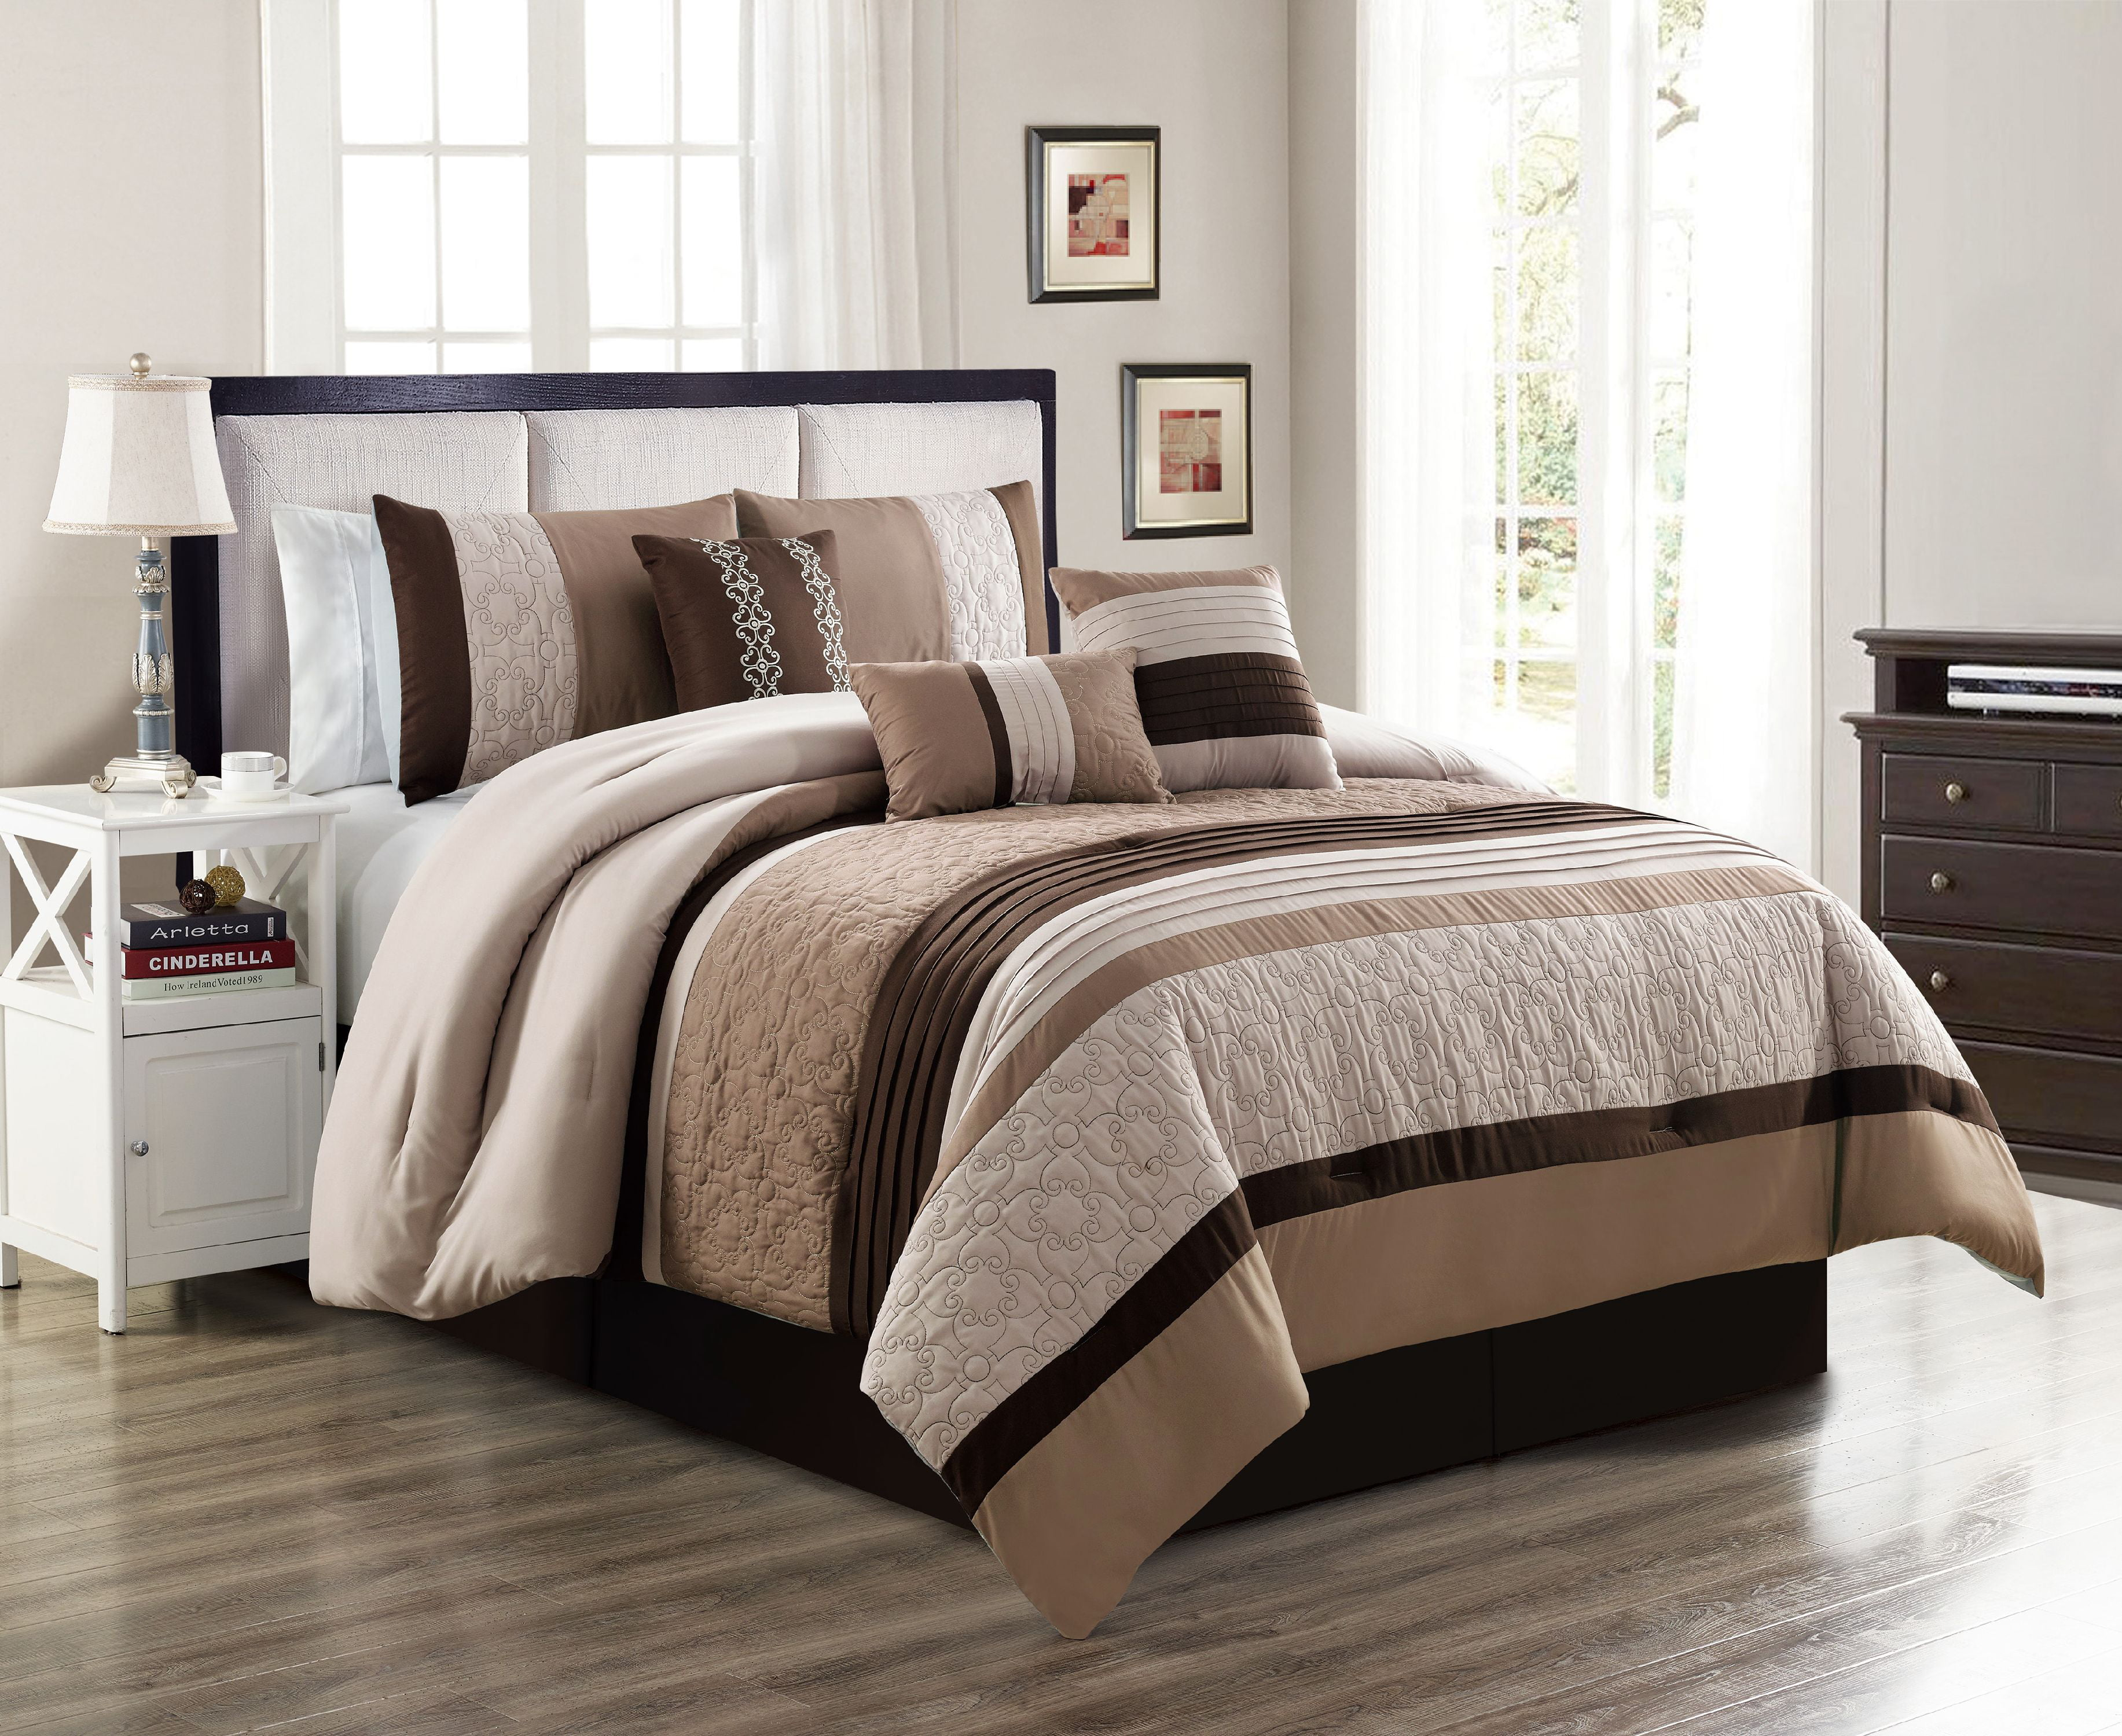 unique home 7 piece collections comforter set abstract